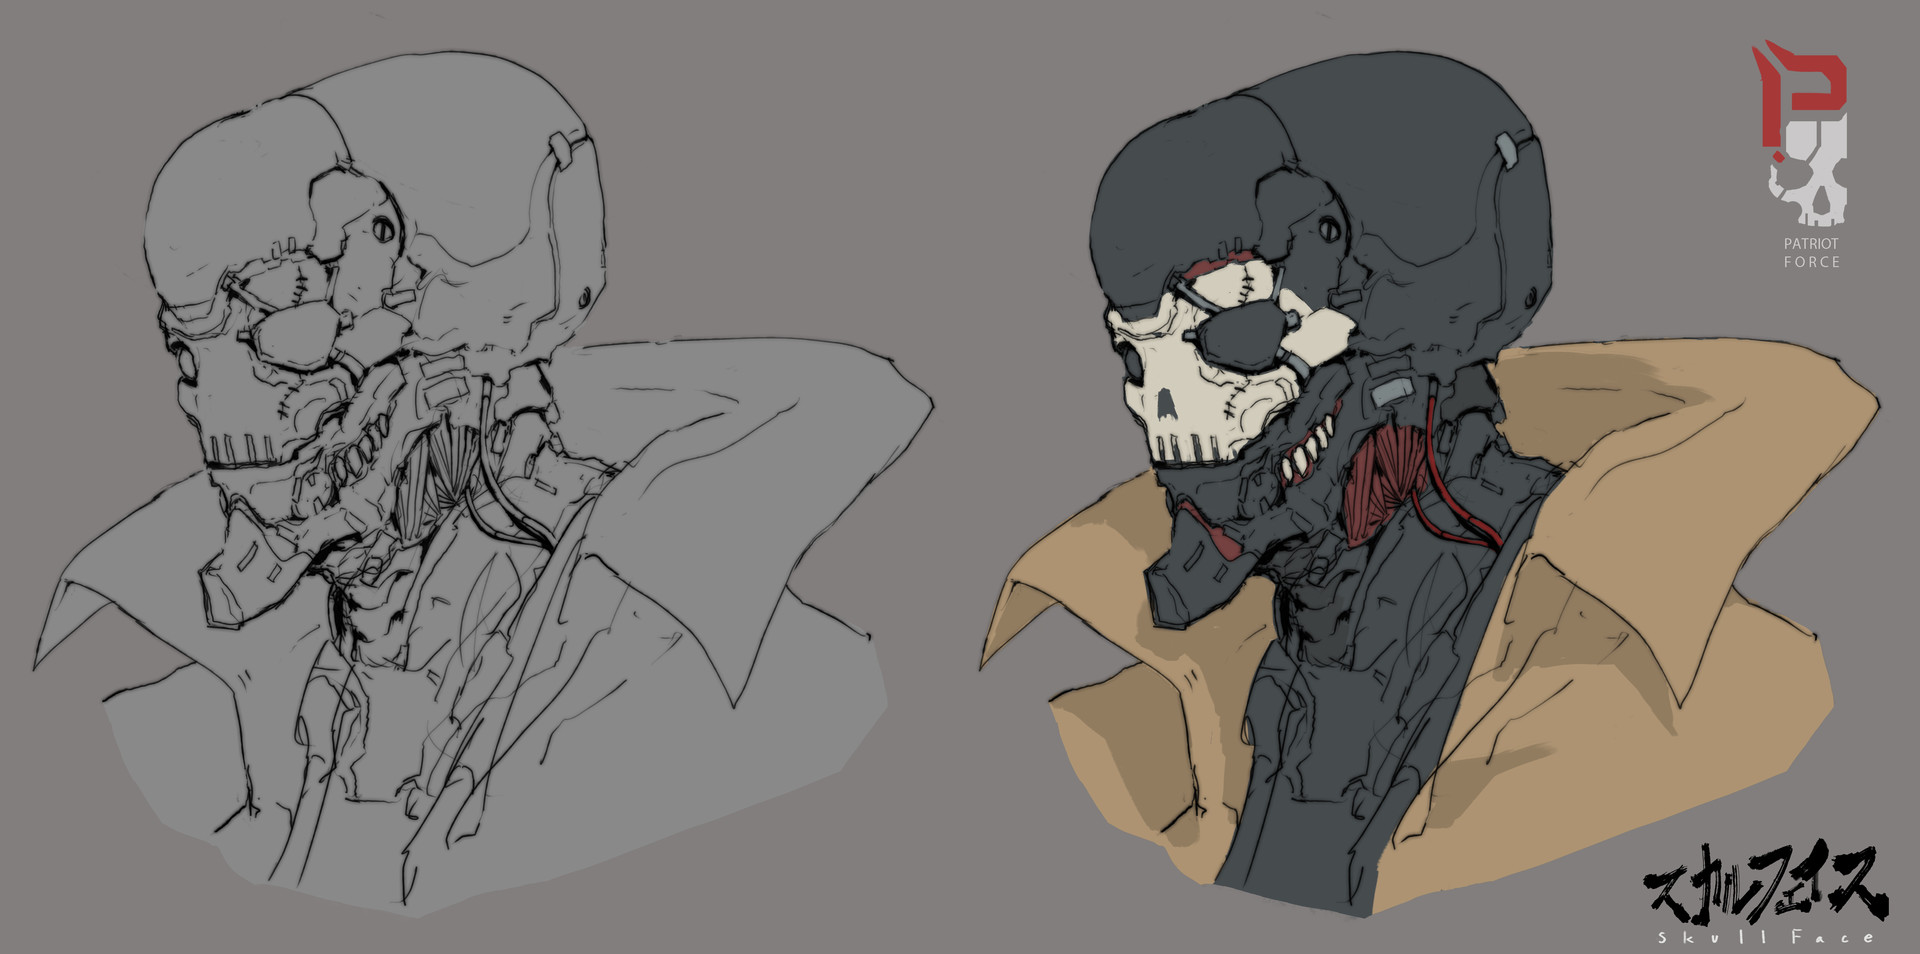 Ching yeh skull face 2